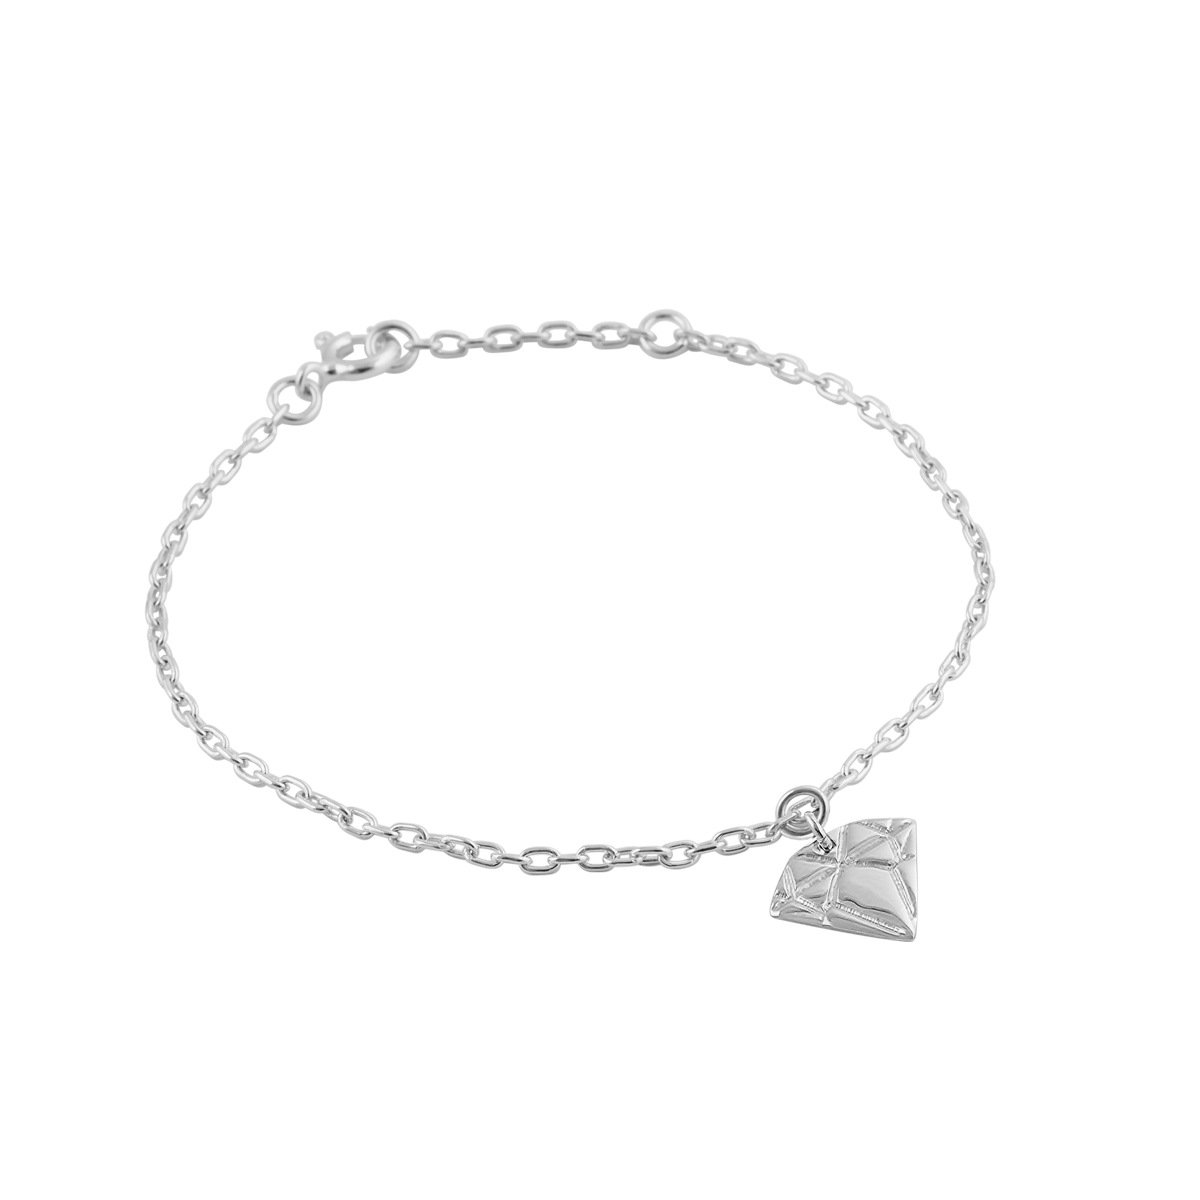 Silver Diamond Bracelet in the group SHOP / BRACELETS at EMMA ISRAELSSON (brace030)